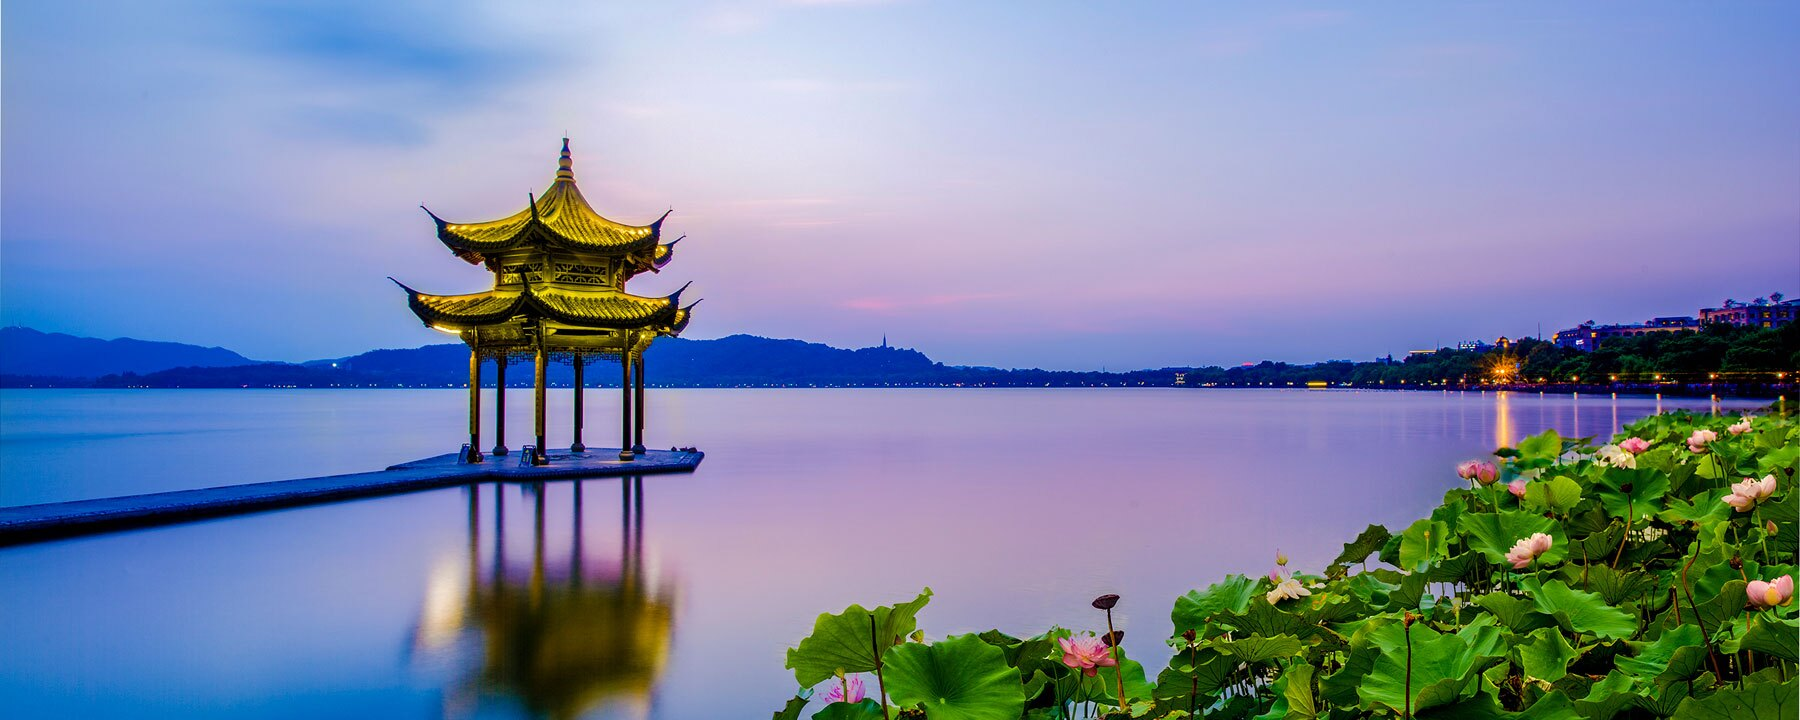 Top 7 Things to Do in Hangzhou